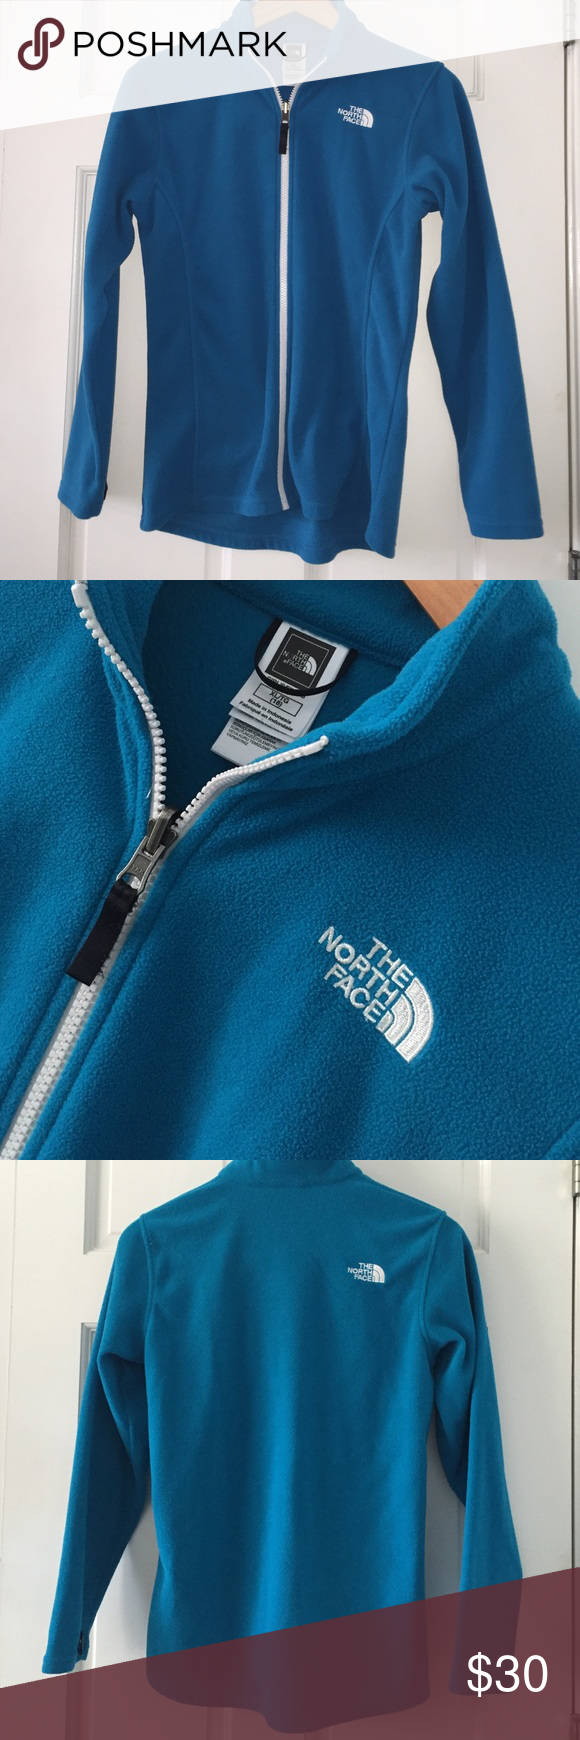 North face girls zip up fleece 18 Easy care 100% polyester - zip up front and snaps at sleeve for gloves. Pre owned in good condition no stains or flaws. North Face Jackets & Coats